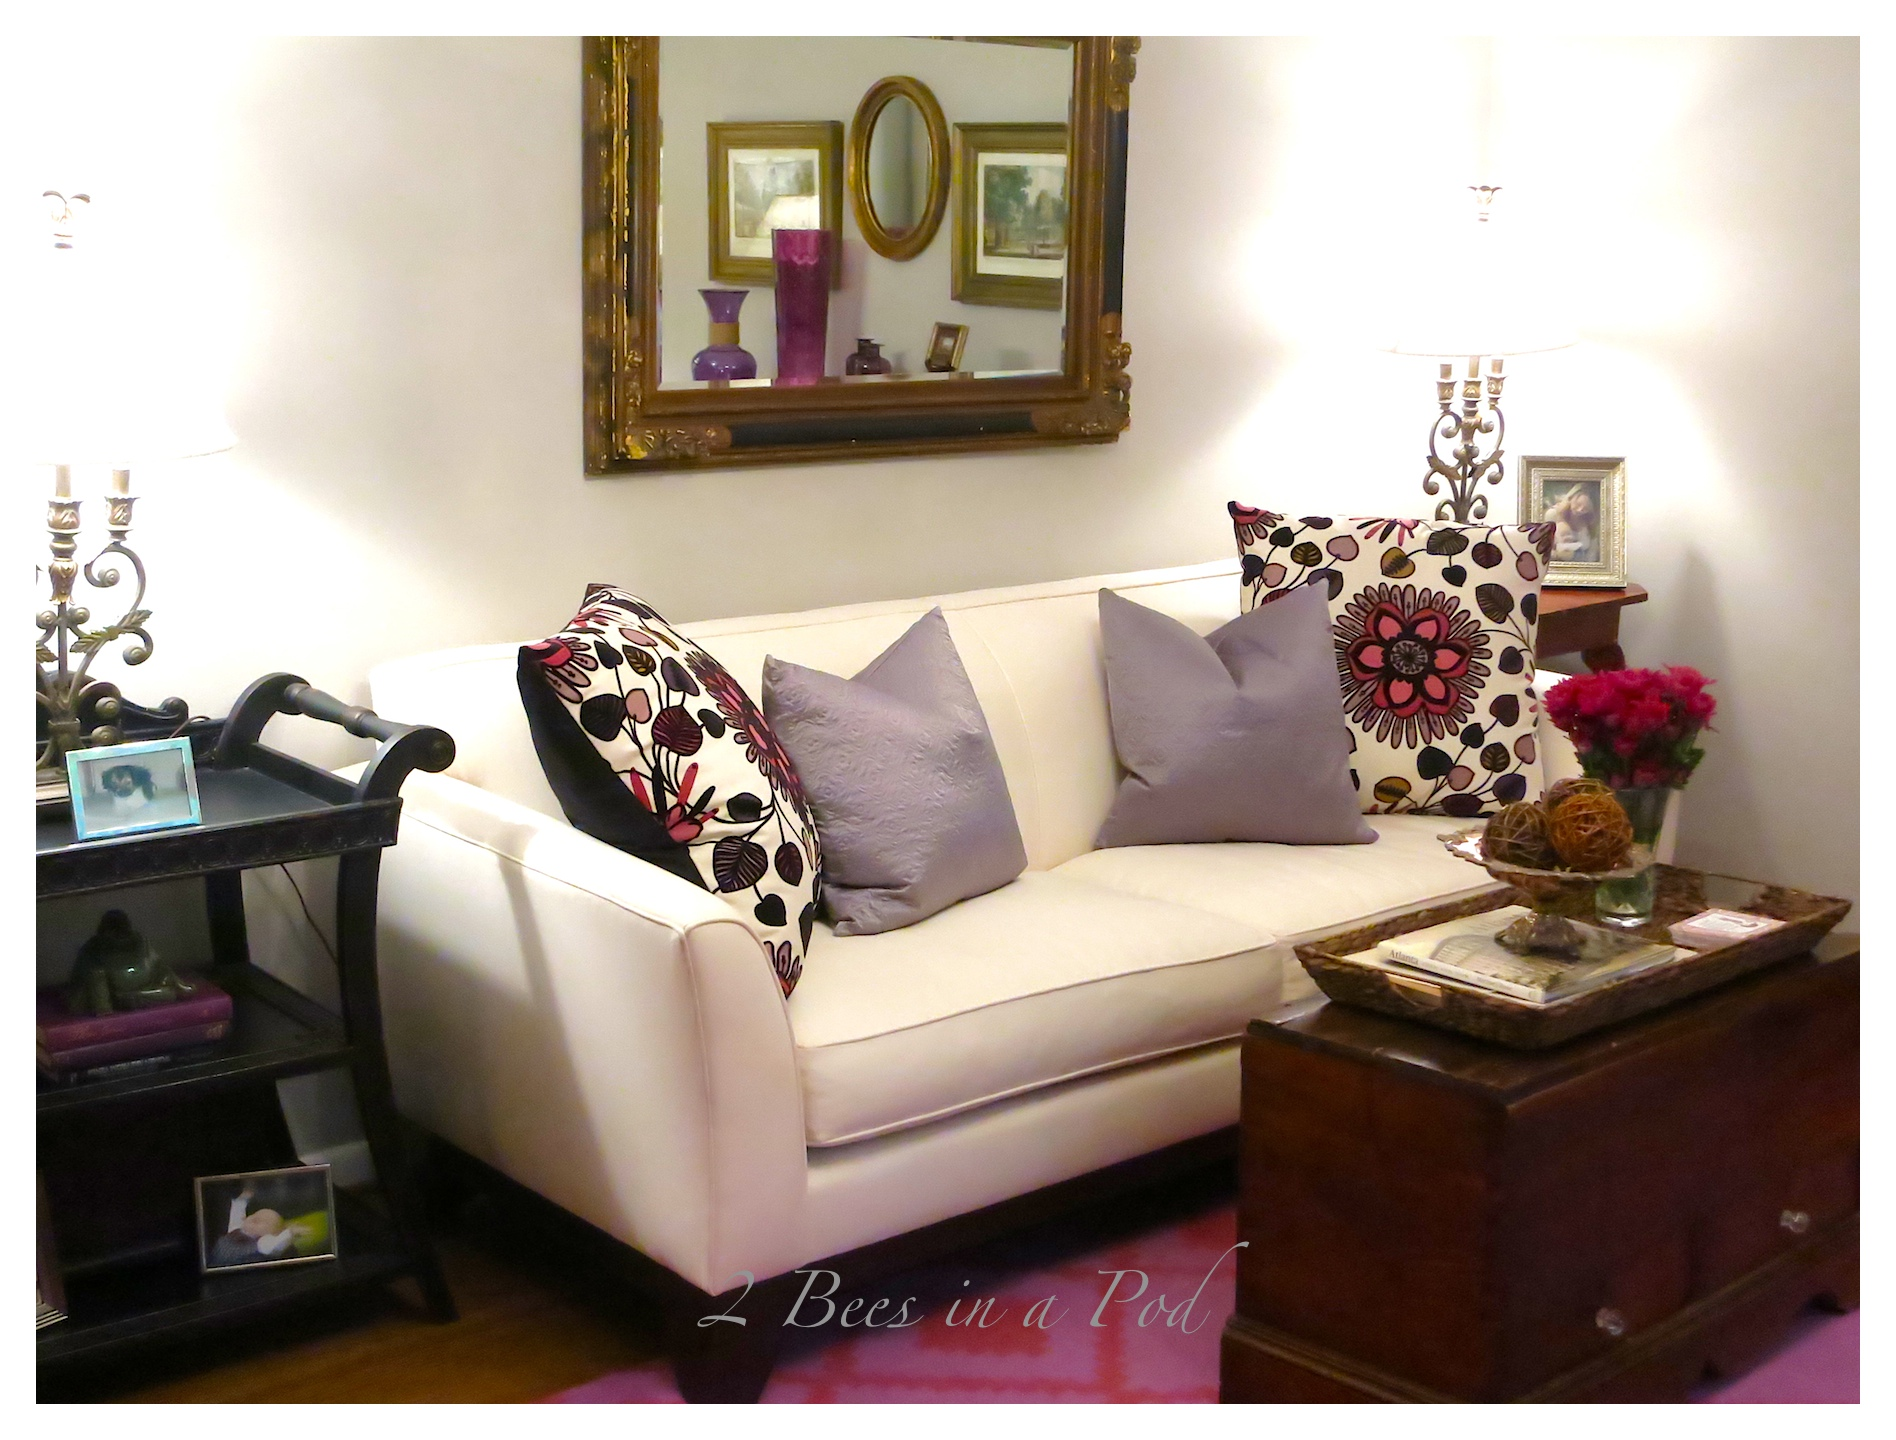 We did a living room makeover for a client that was so much fun! She already had great taste, antiques and furnishings. We just came to pull it all together!